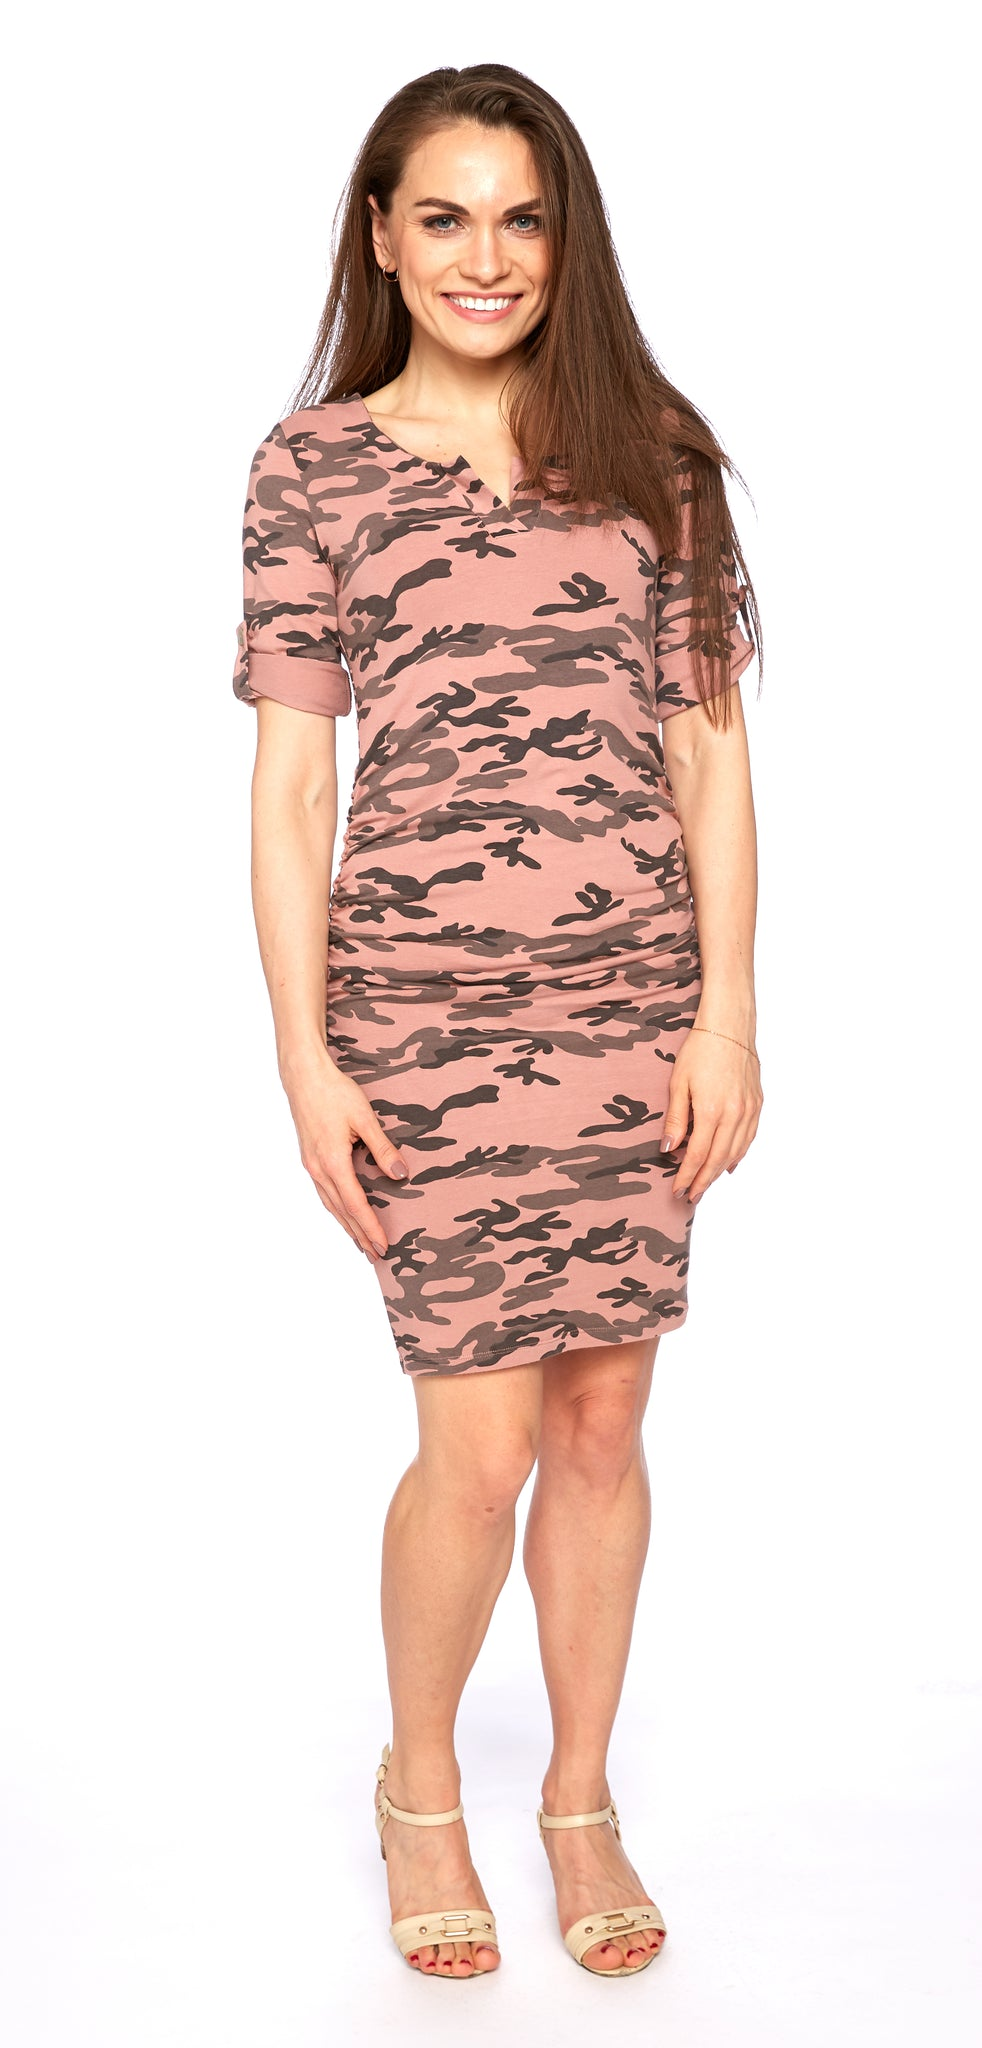 Tamarind Dress in Old Rose Camo